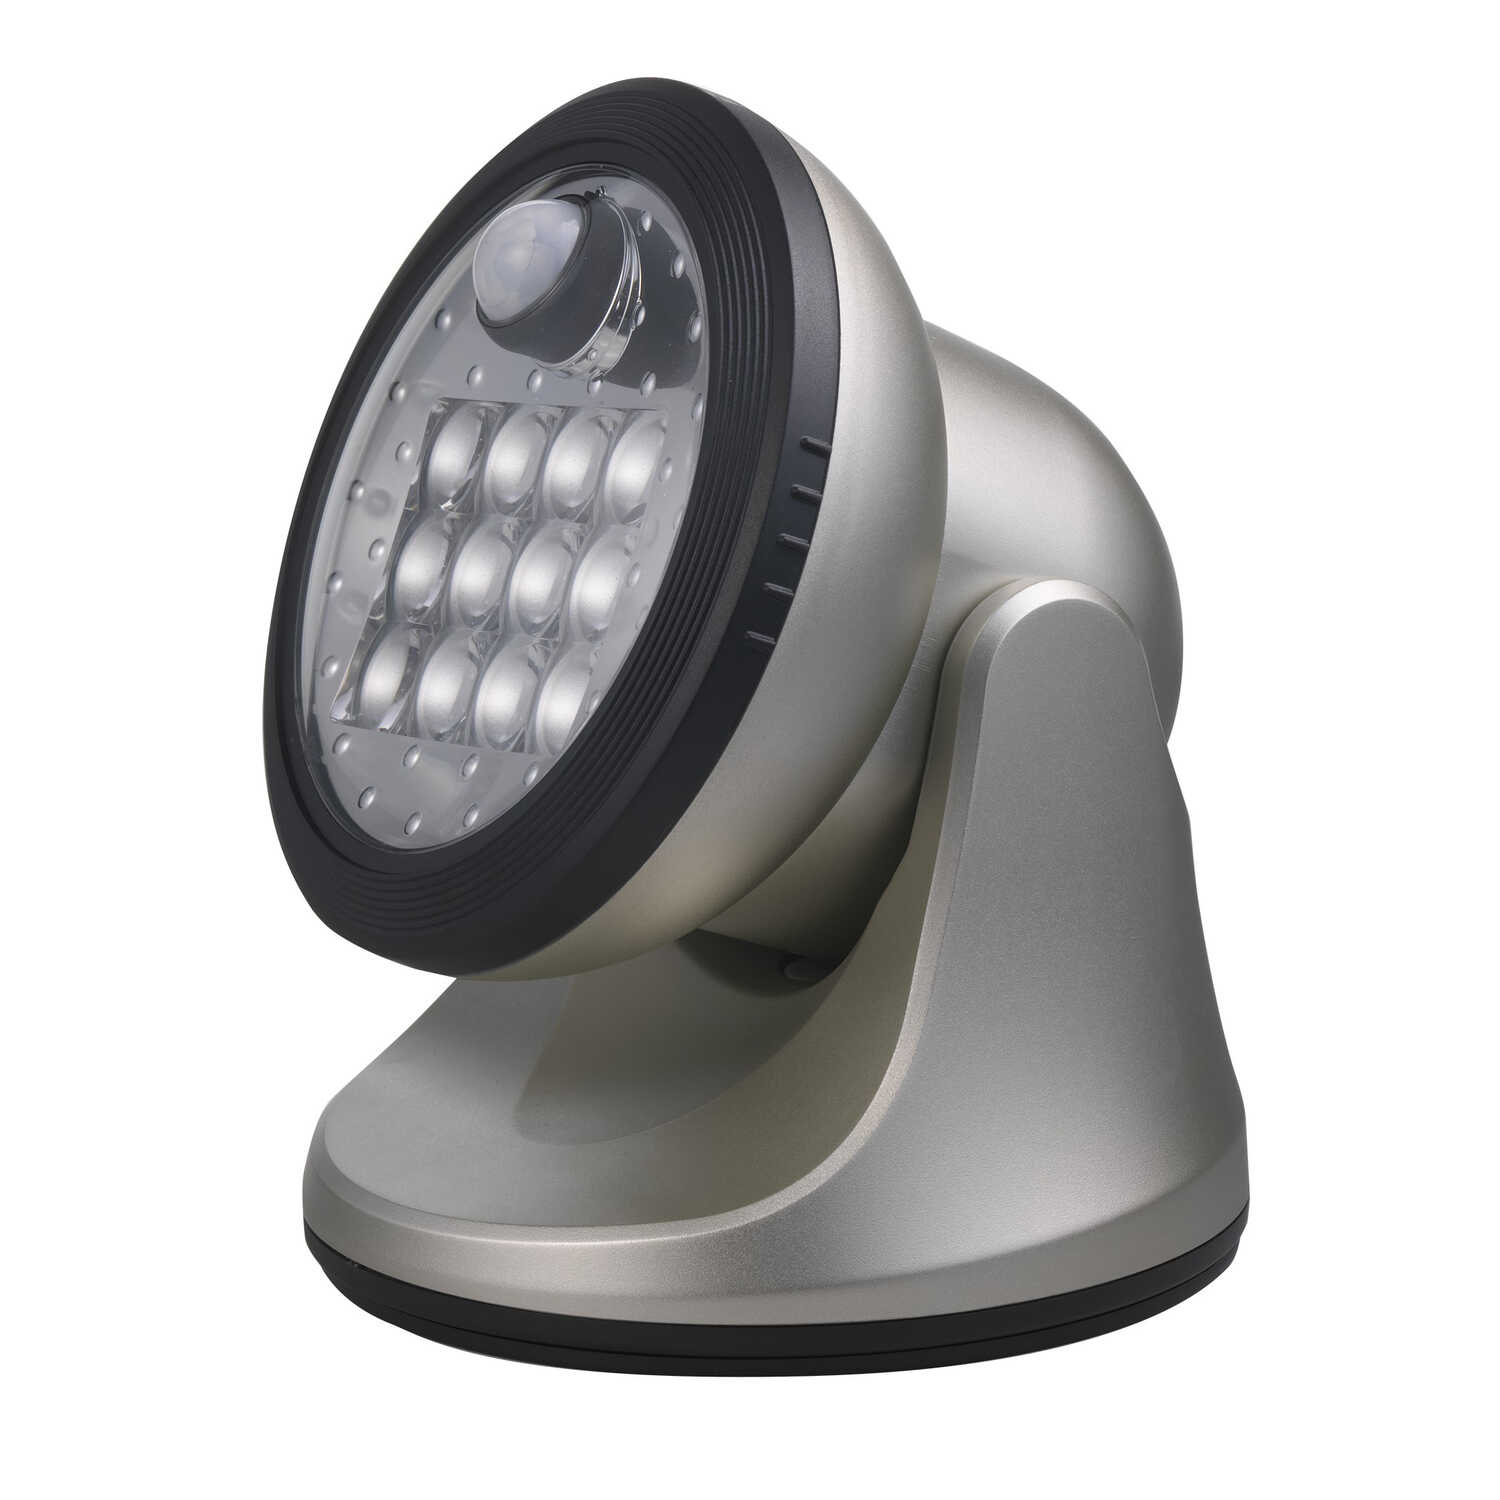 Fulcrum  LIGHT IT  Motion-Sensing  Silver  Battery Powered  Porch Light  Silver